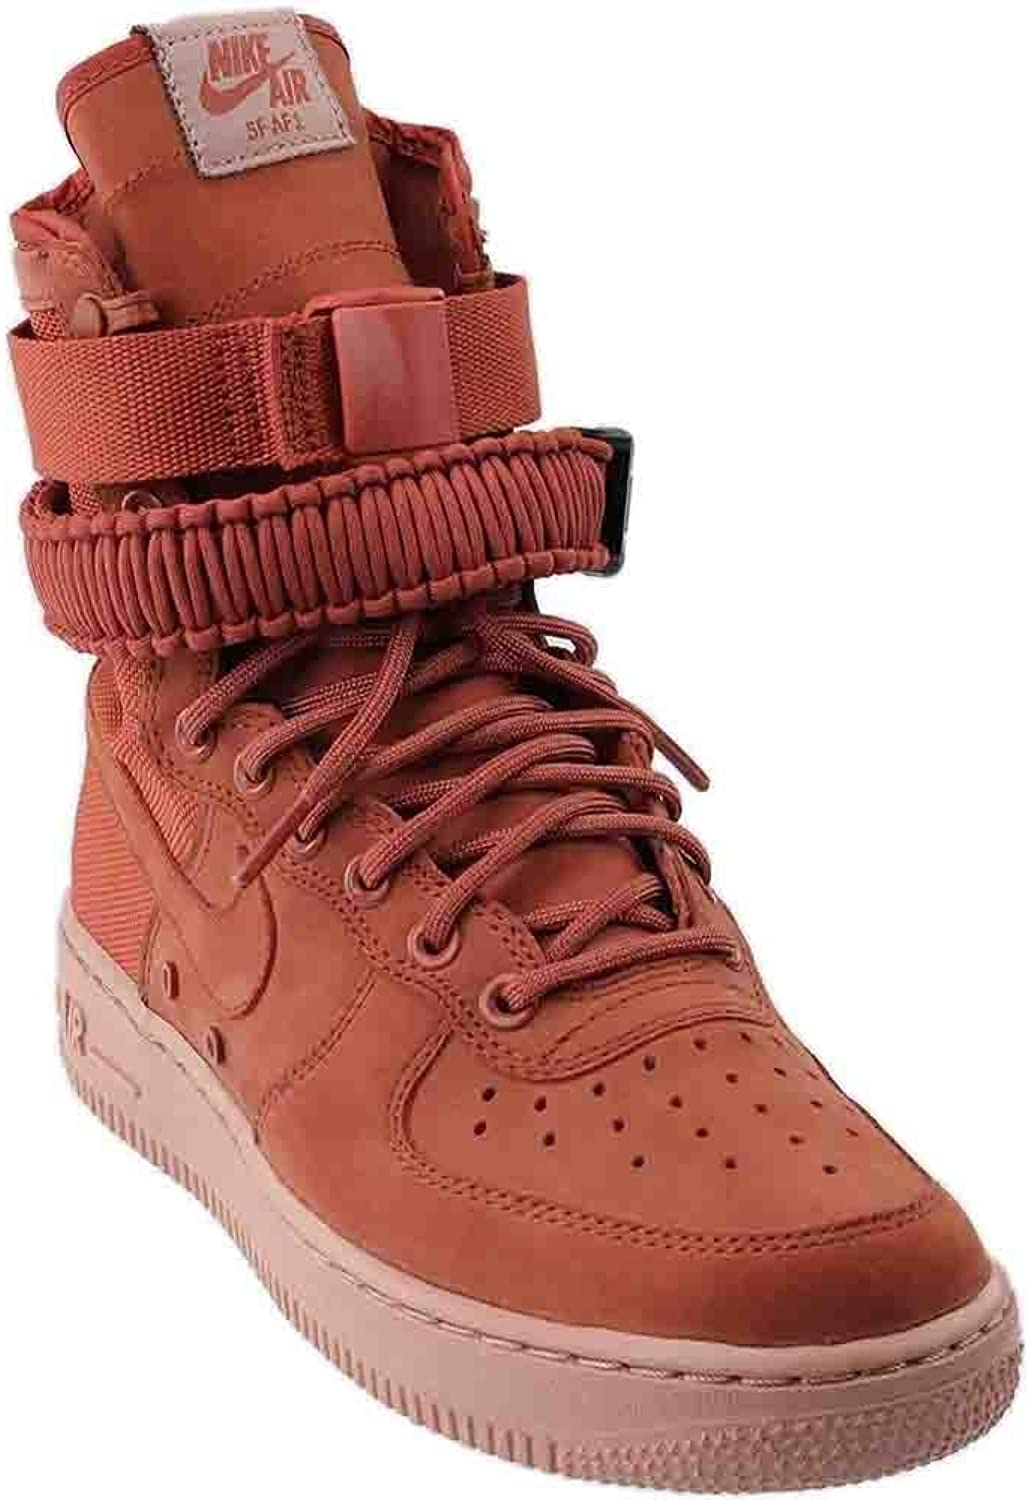 Nike Nike Nike W Sf Af1 - dusty peach/dusty peach-partic, Größe:11 B078P3D47Q 71f436